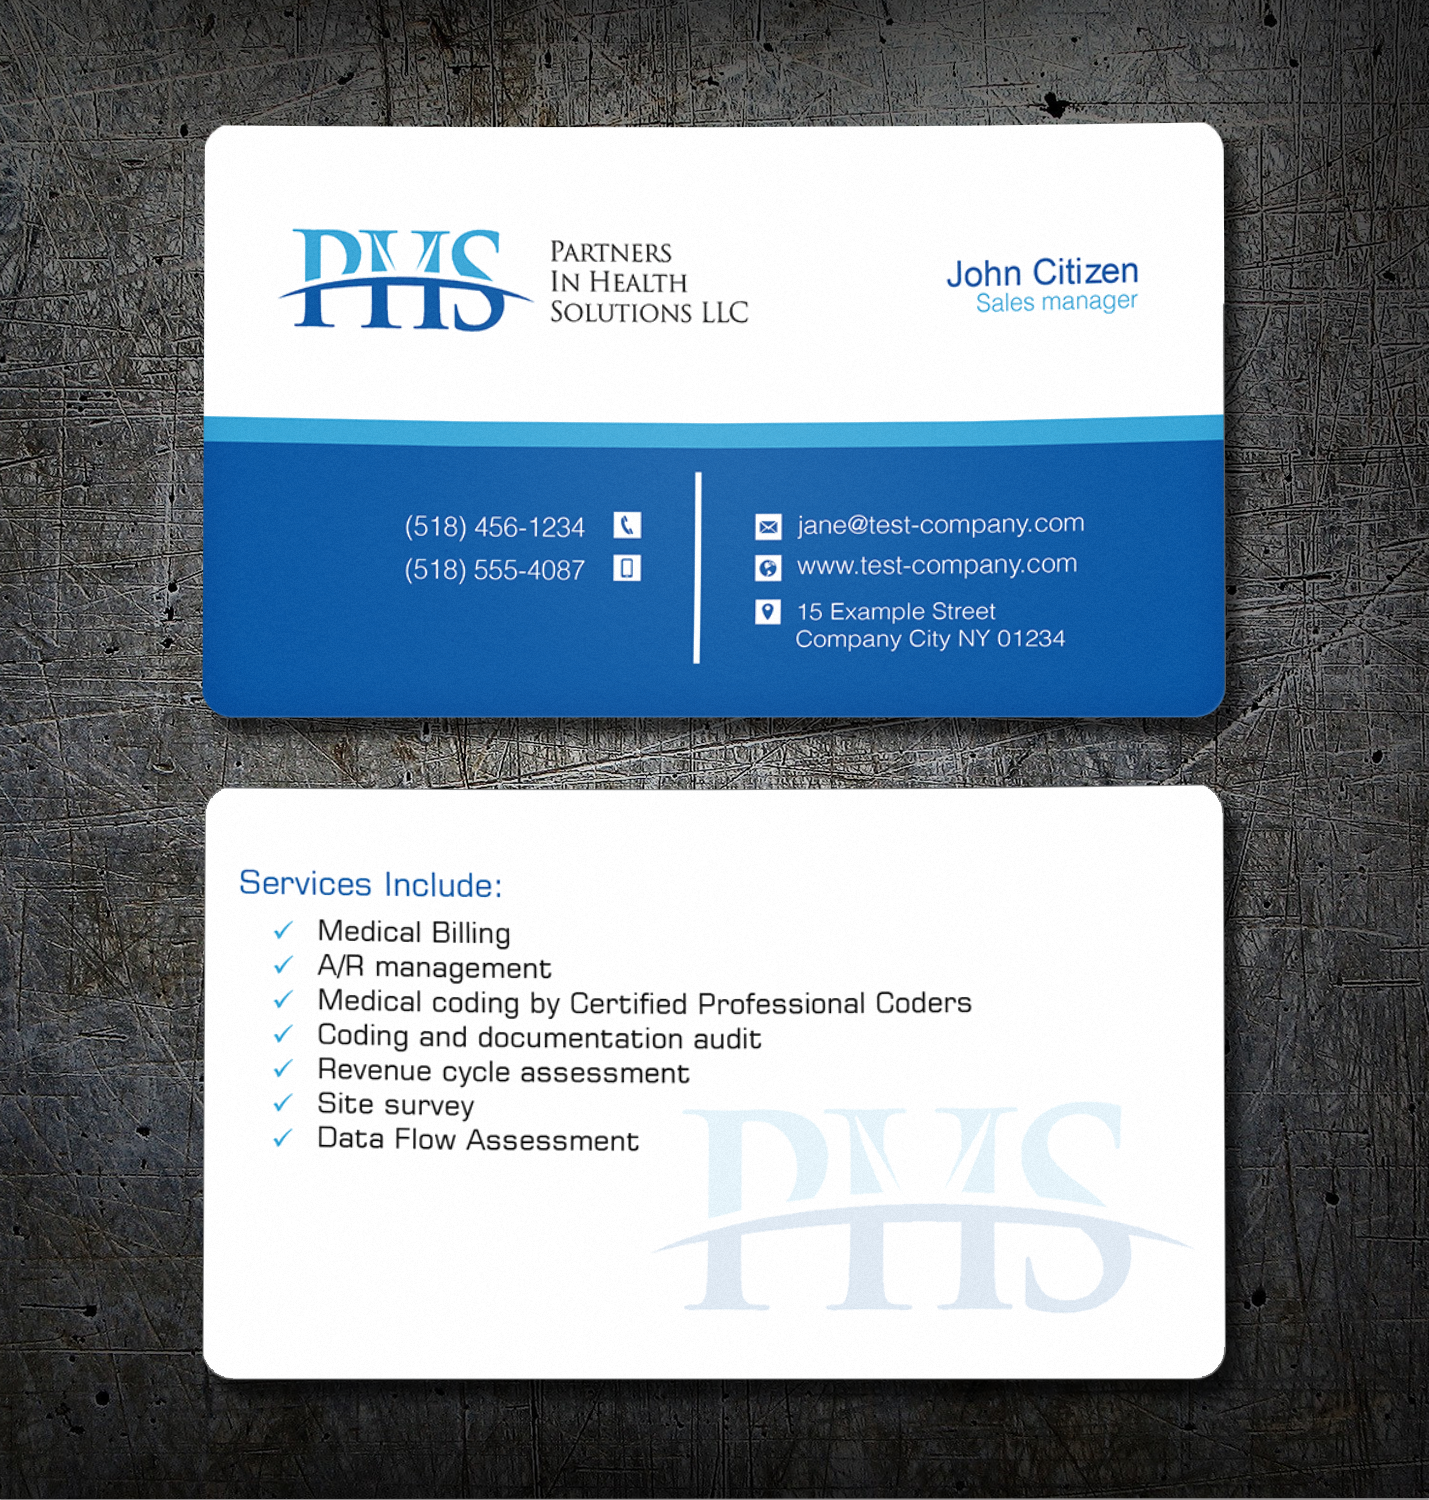 Serious professional medical business card design for partners in business card design by creation lanka for partners in health solutions llc design 16996059 reheart Images